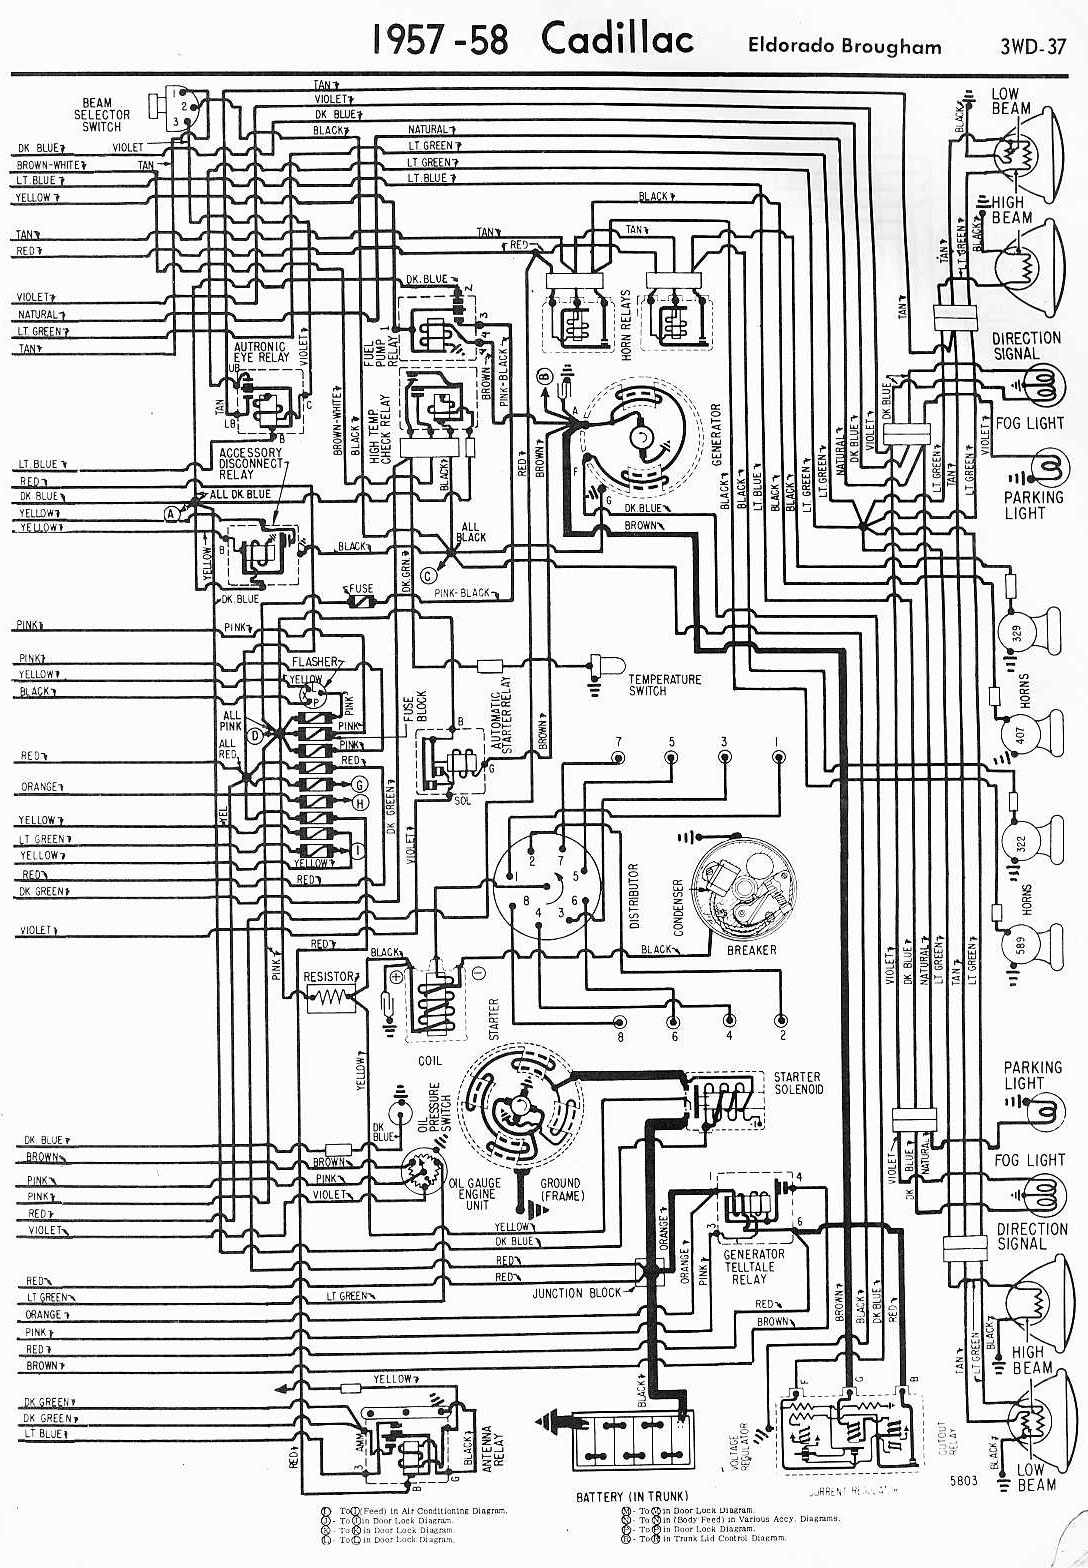 cadillac ignition switch wiring diagram free download cadillac - car manuals pdf & fault codes dtc 1997 cadillac deville stereo wiring diagram free download